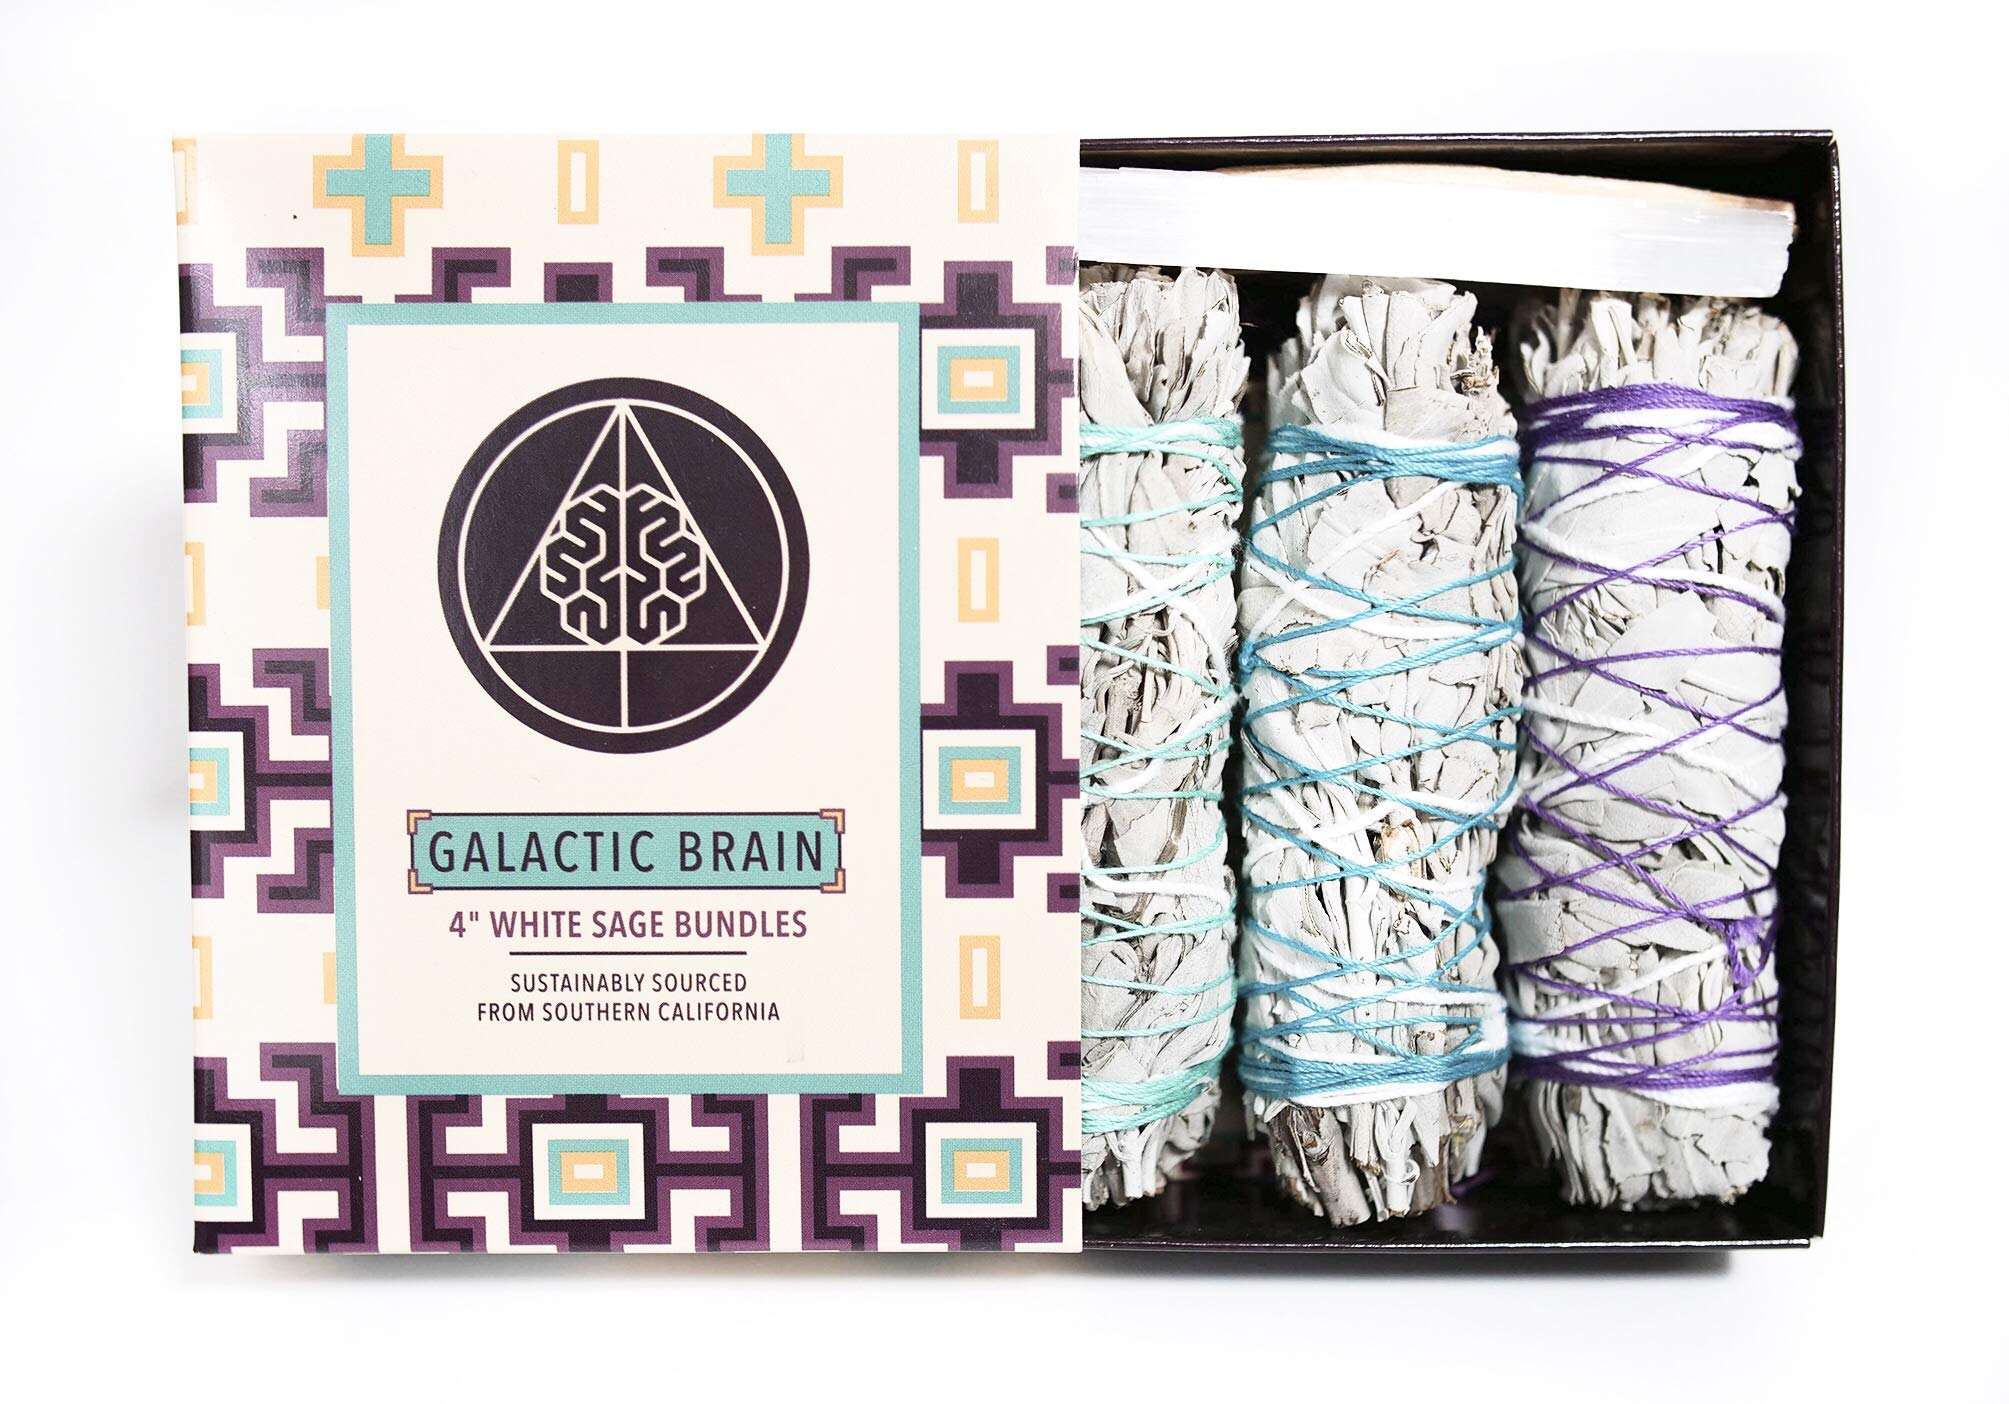 Galactic Brain 4 Inch White Sage Bundles | 3 White Sage Smudge Sticks with 2 Sample Palo Santo Sticks and 1 Selenite Crystal in Gift Set for Cleansing Your Home by Galactic Brain (Image #1)